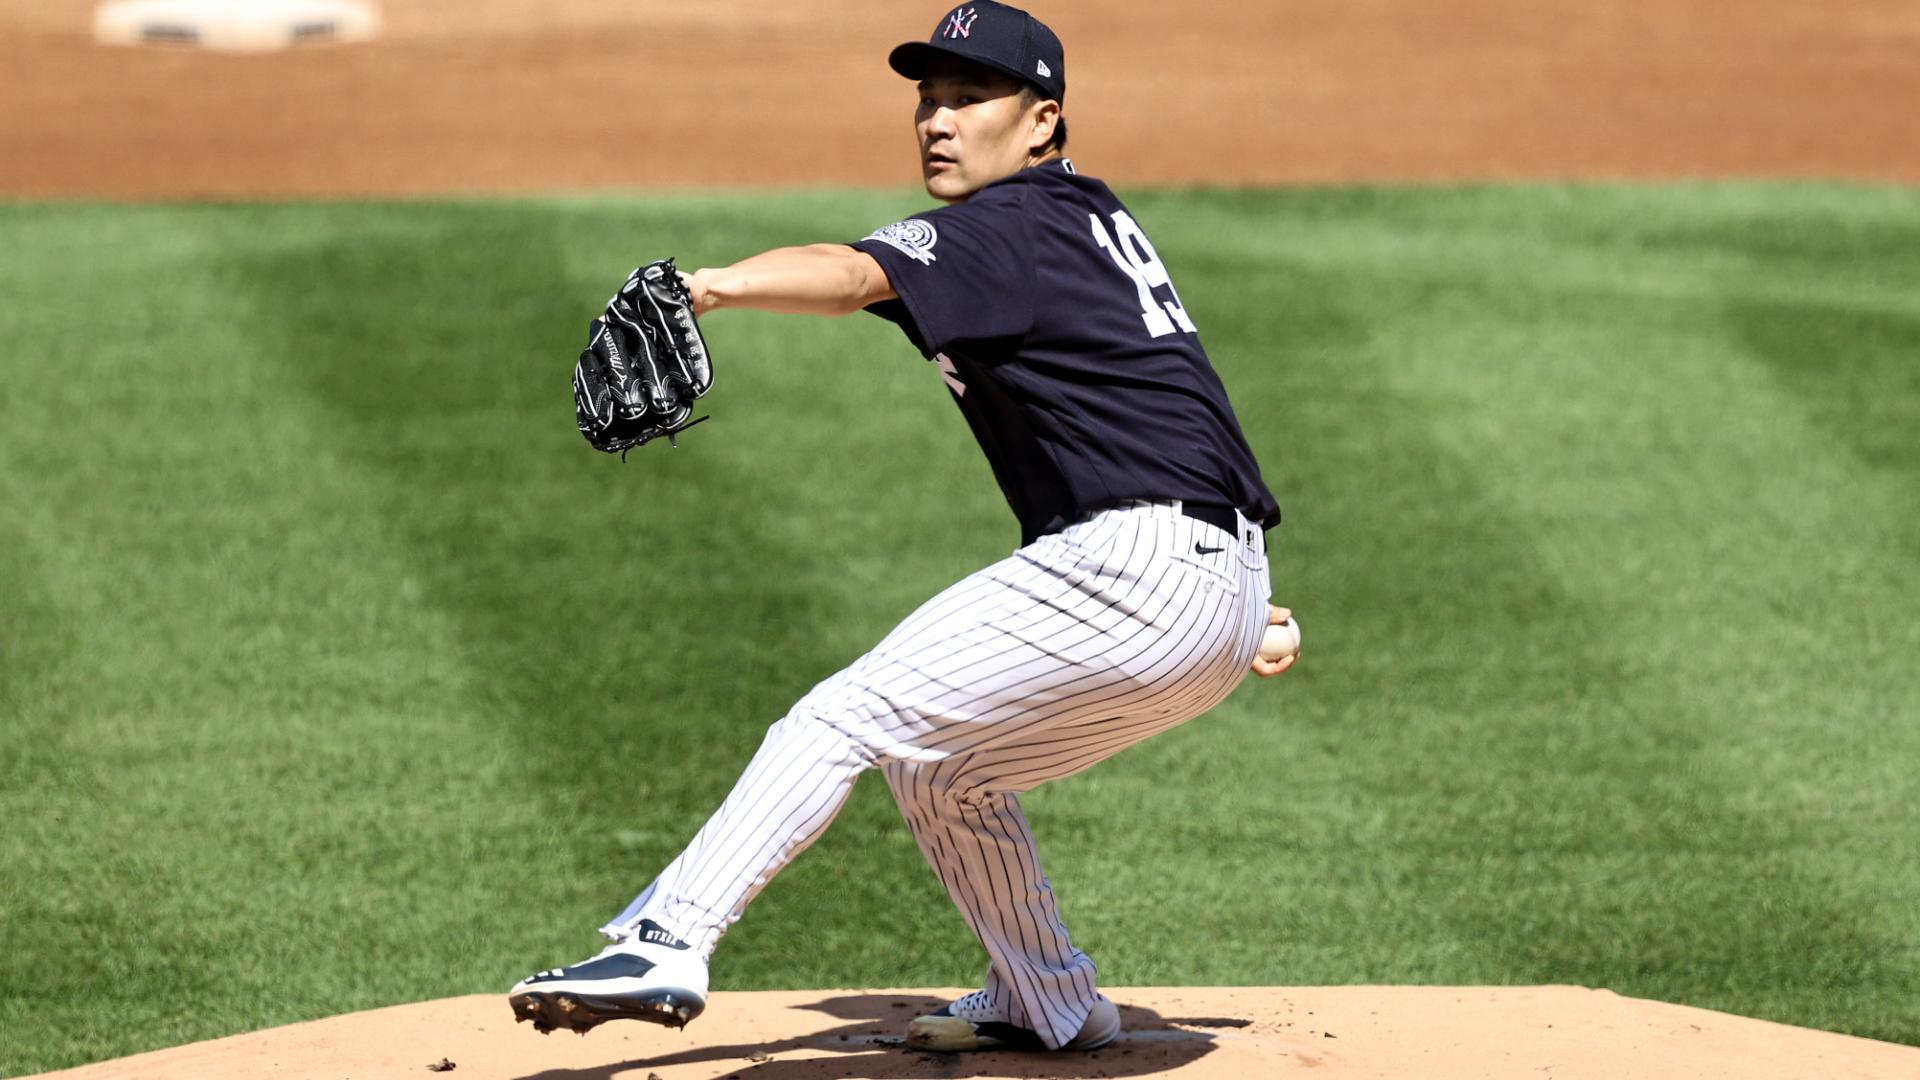 Yankees pitcher Masahiro Tanaka throws BP ahead of planned July 31 return